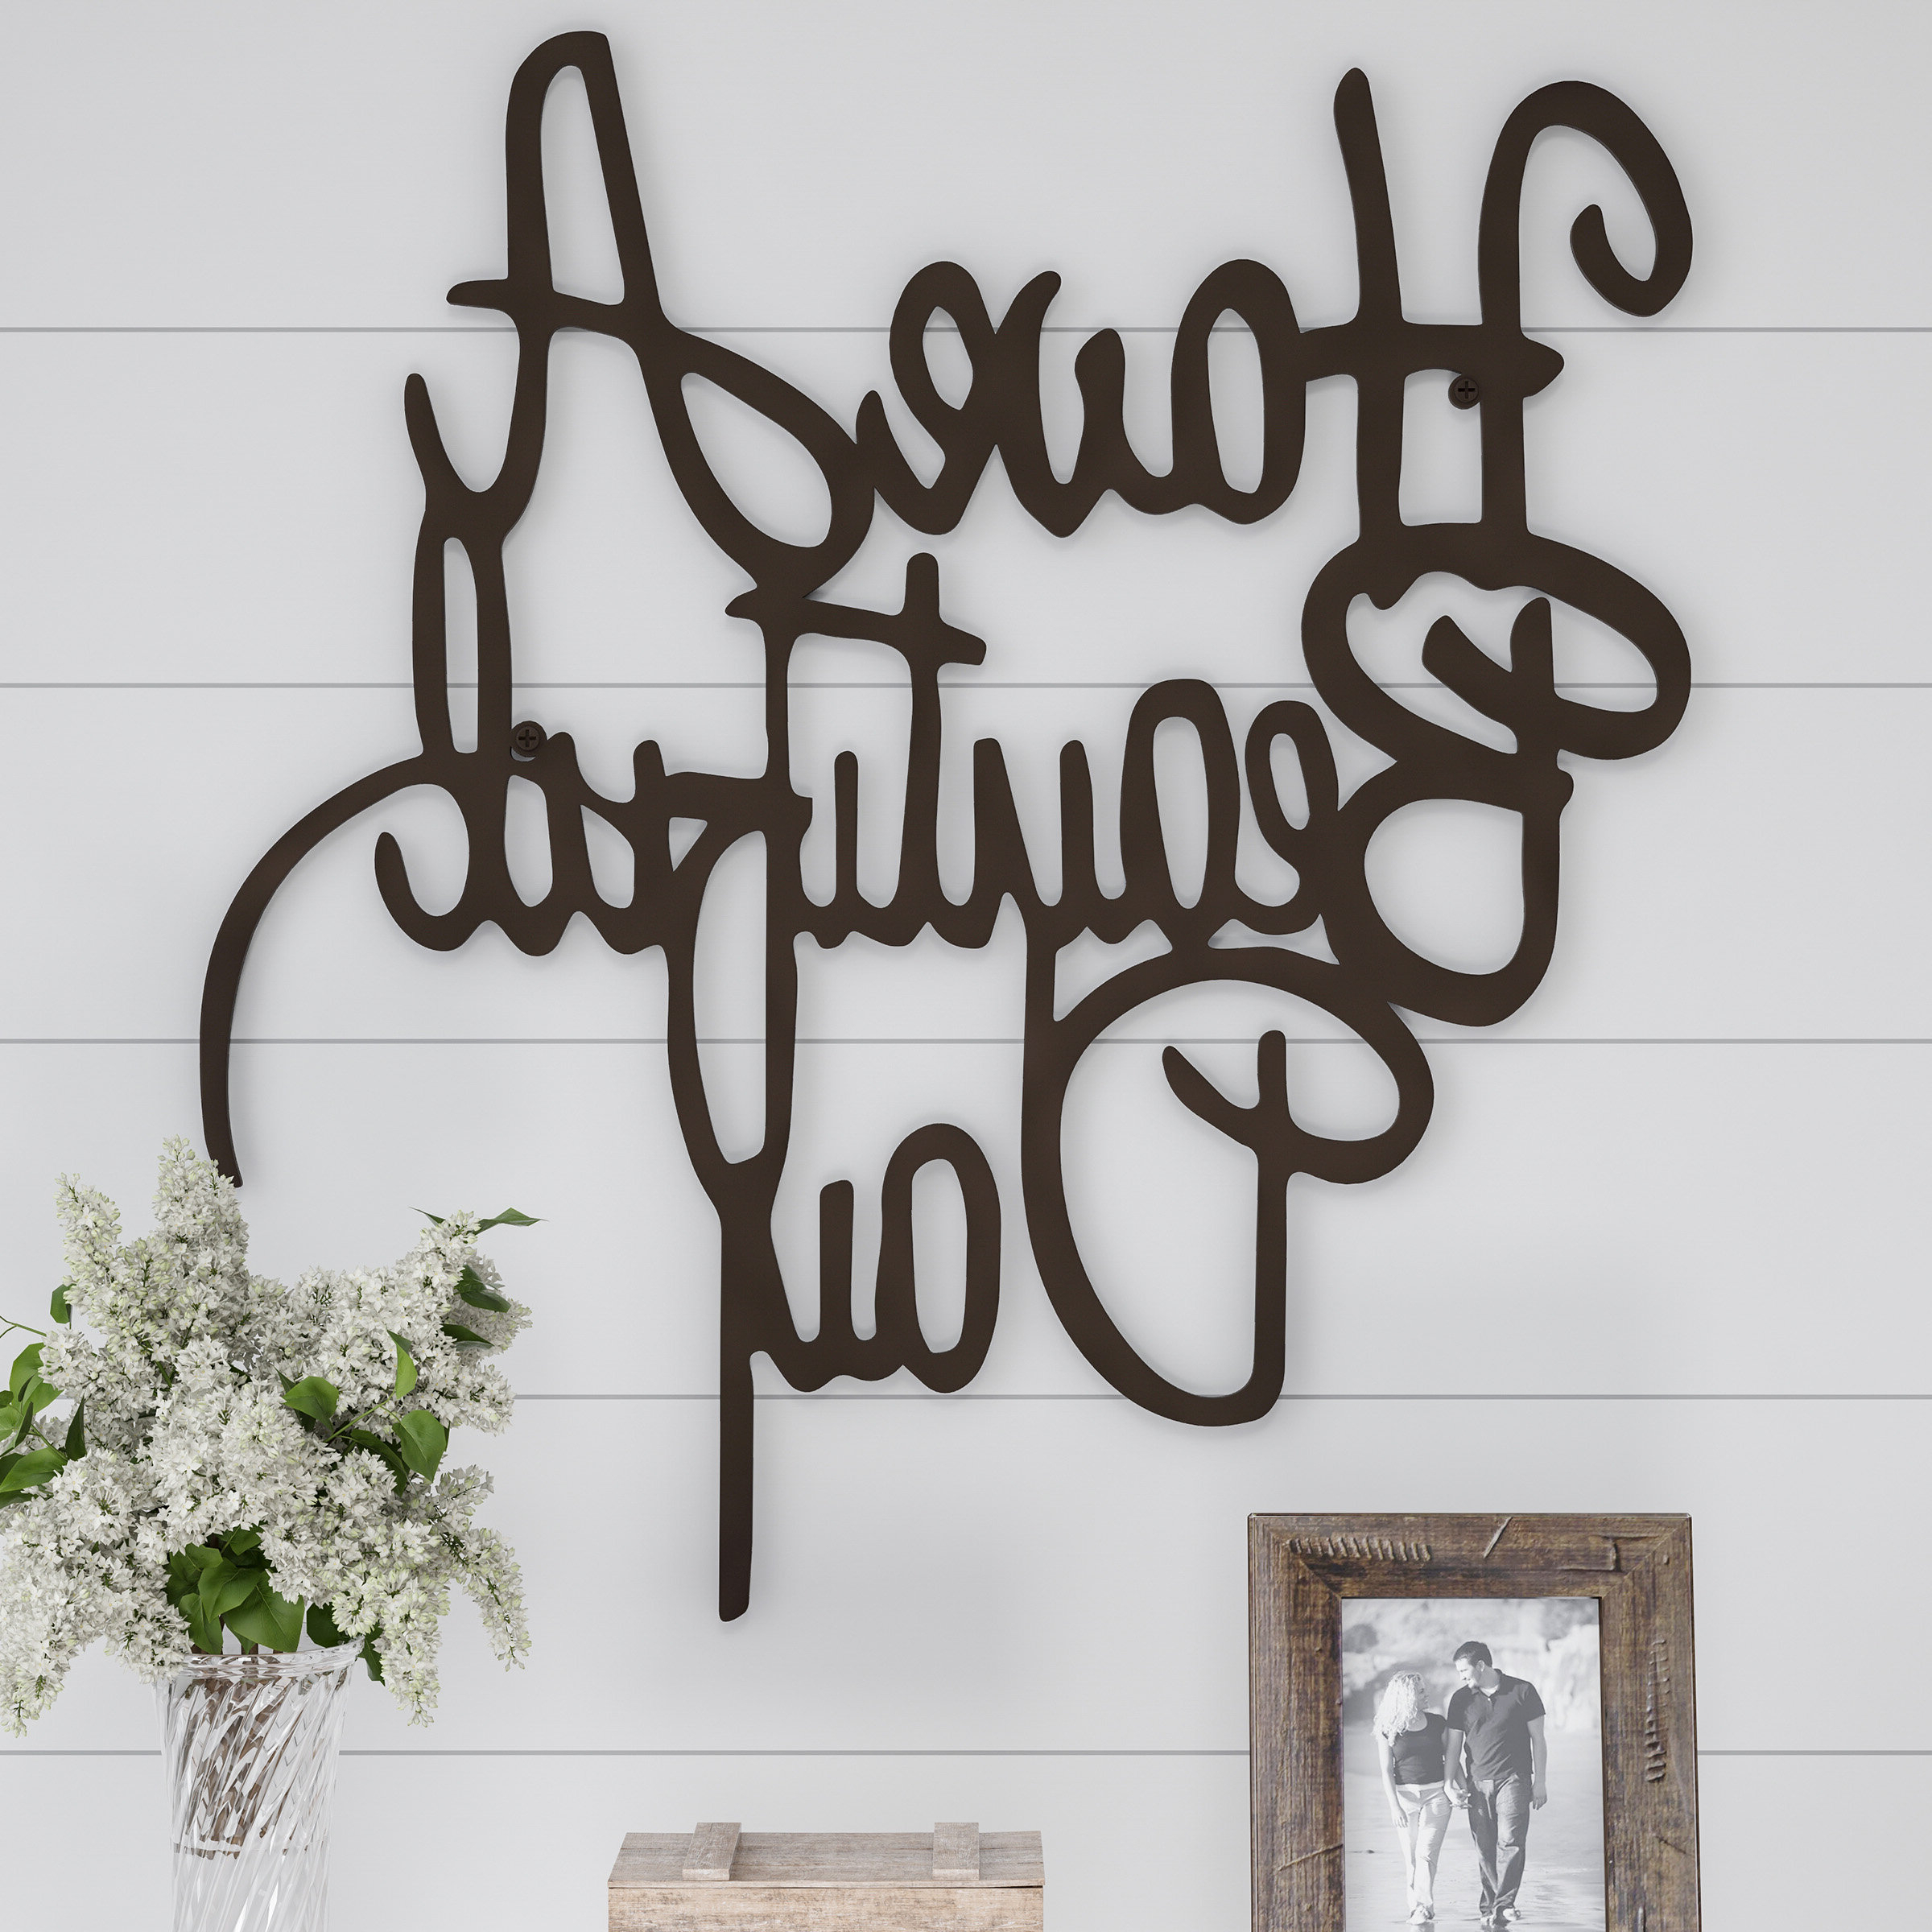 Choose Happiness 3d Cursive Metal Wall Décor Inside Newest Gracie Oaks Have A Beautiful Day Metal Wall Décor (View 18 of 20)